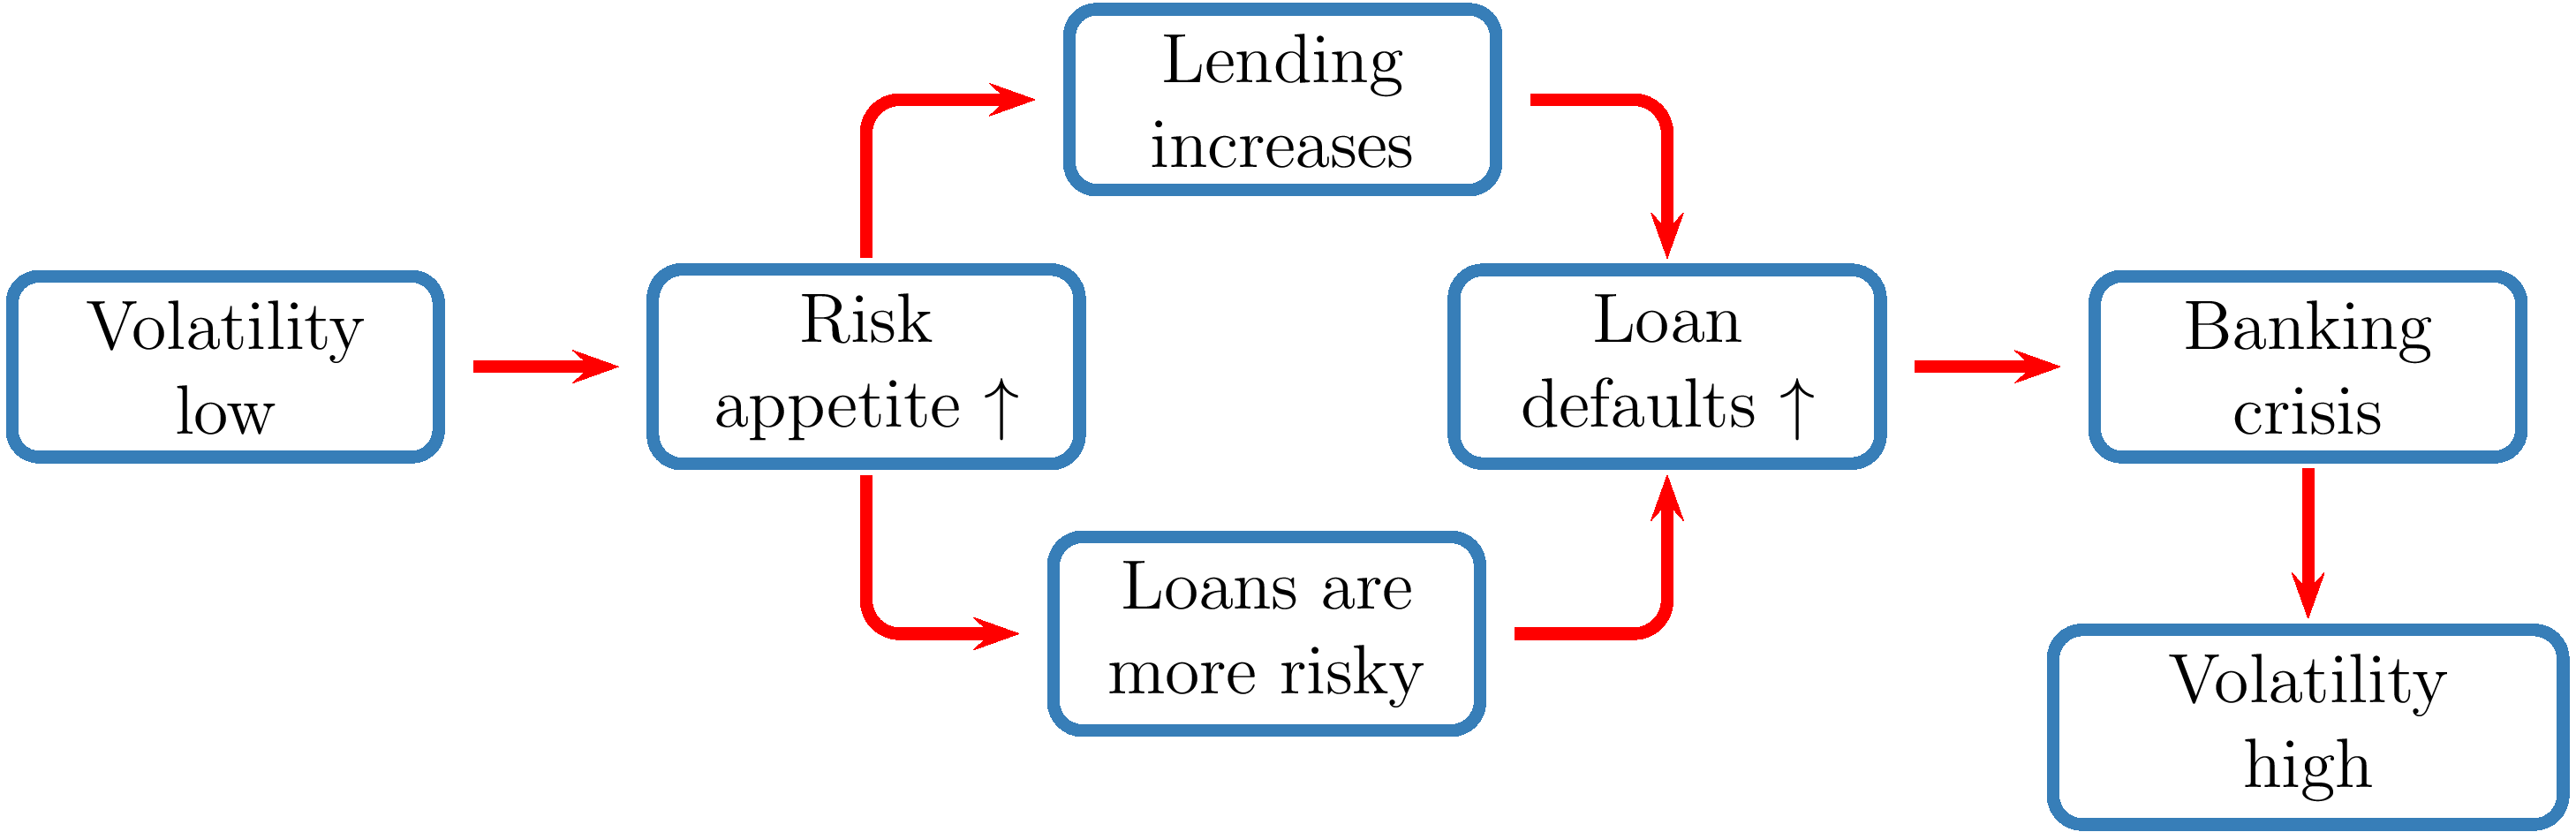 Figure 1. The relationship between volatility and financial crises. See accessible link for data description.